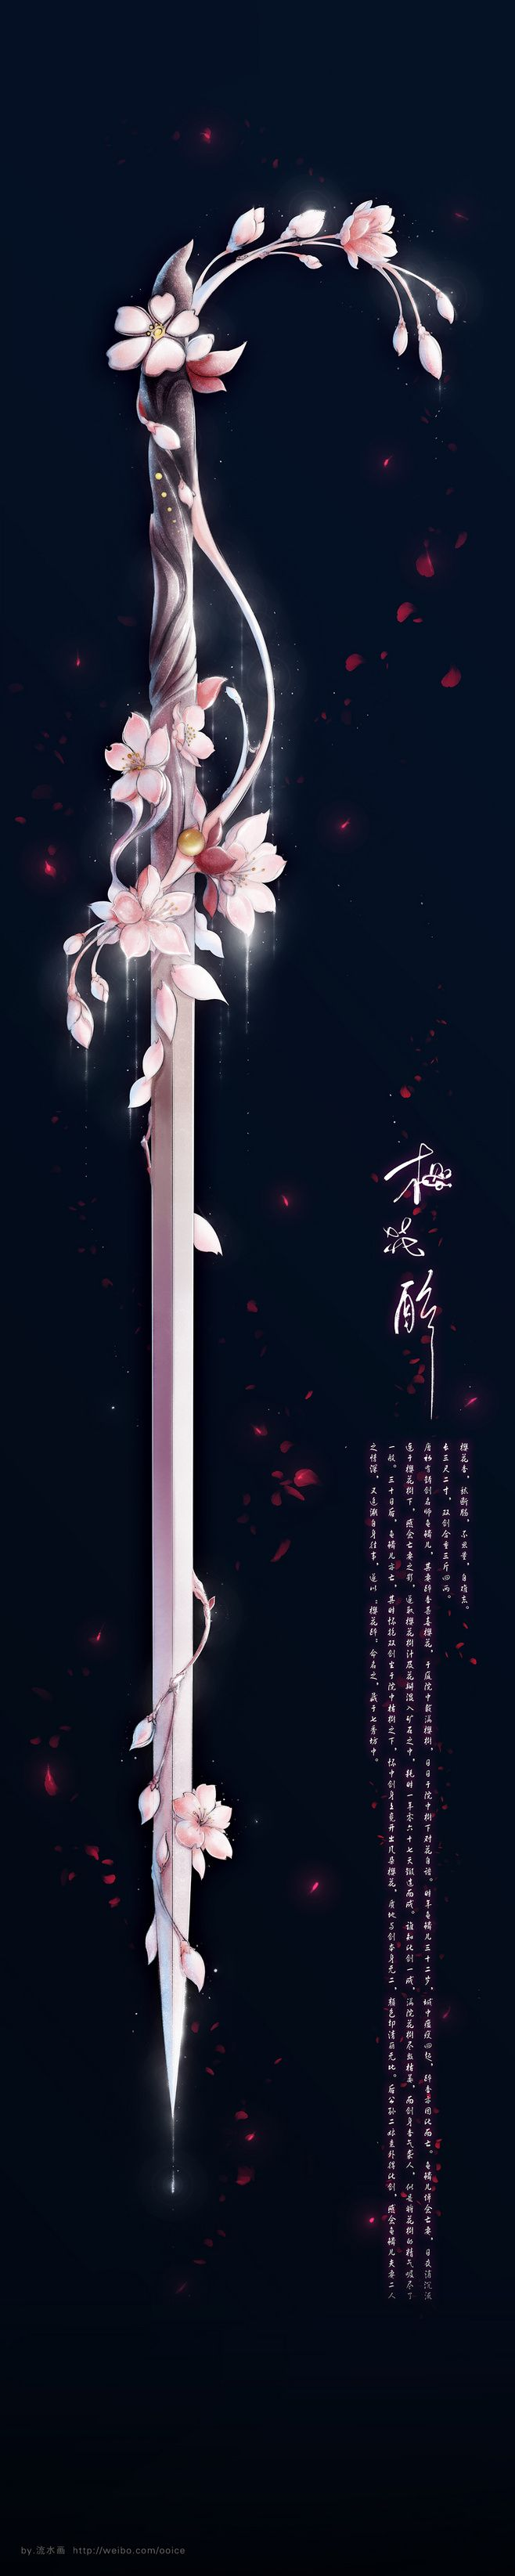 if I could be anything I would be a katana because it can cut through anything